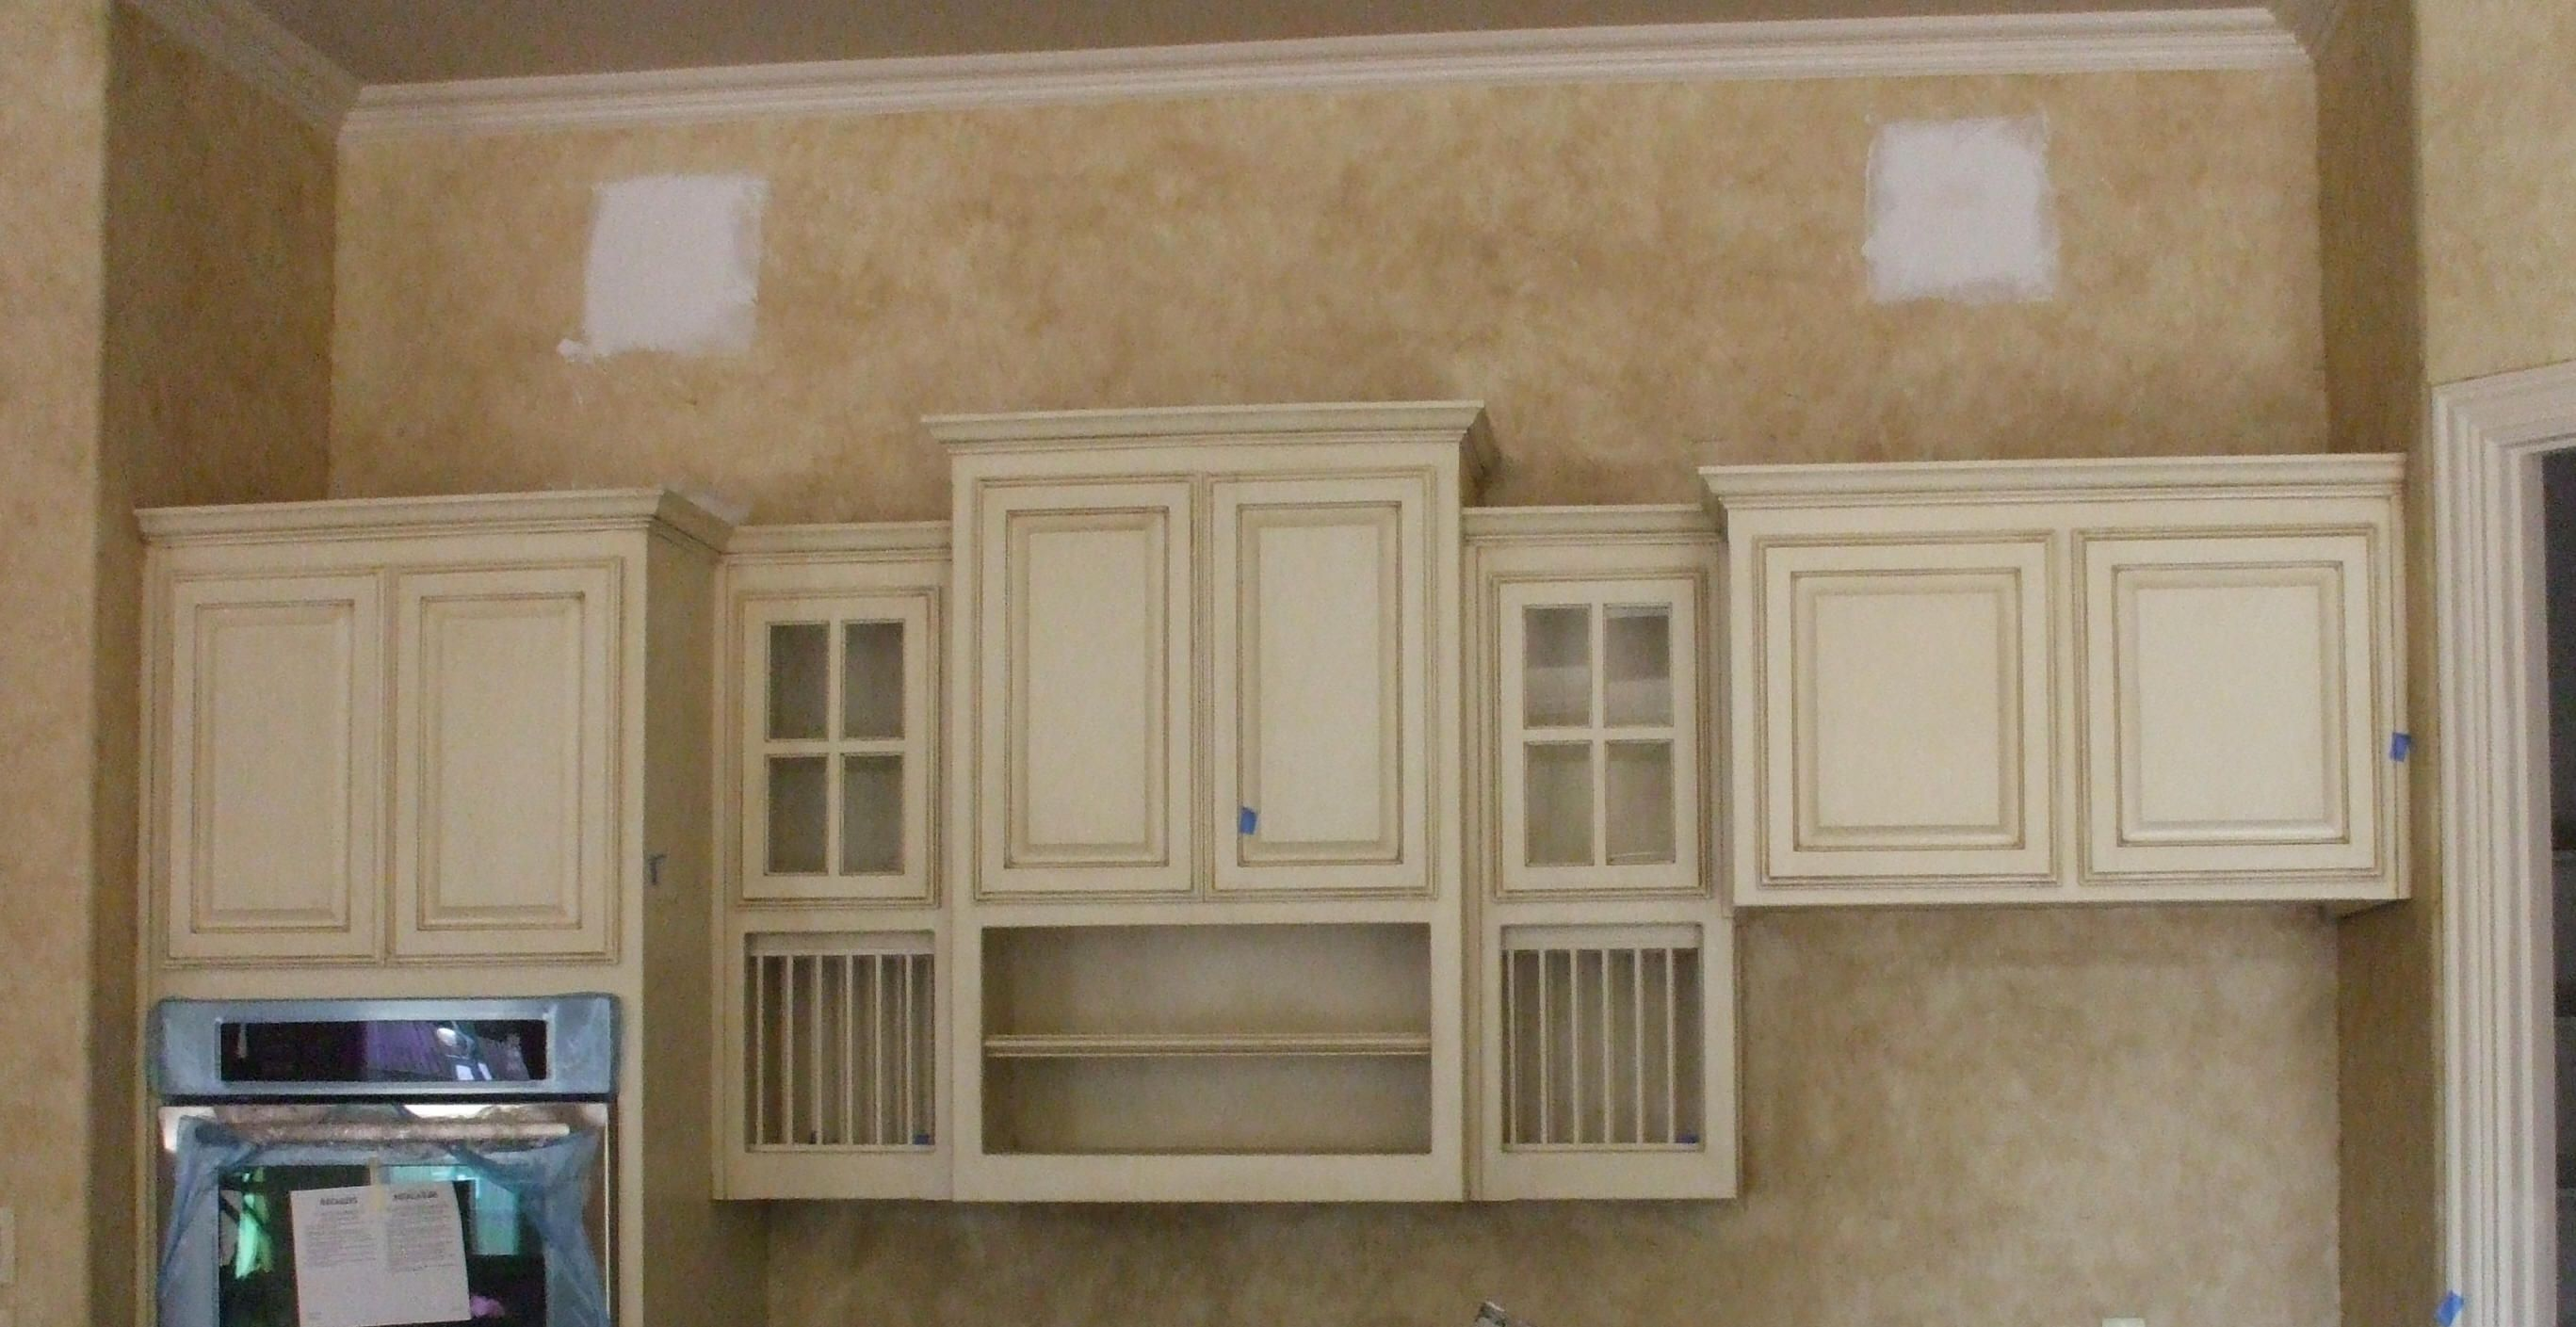 Glazing Kitchen Cabinets For More Attractive Interface In 2020 Kitchen Cabinets Kitchen Wall Cabinets Prefab Kitchen Cabinets